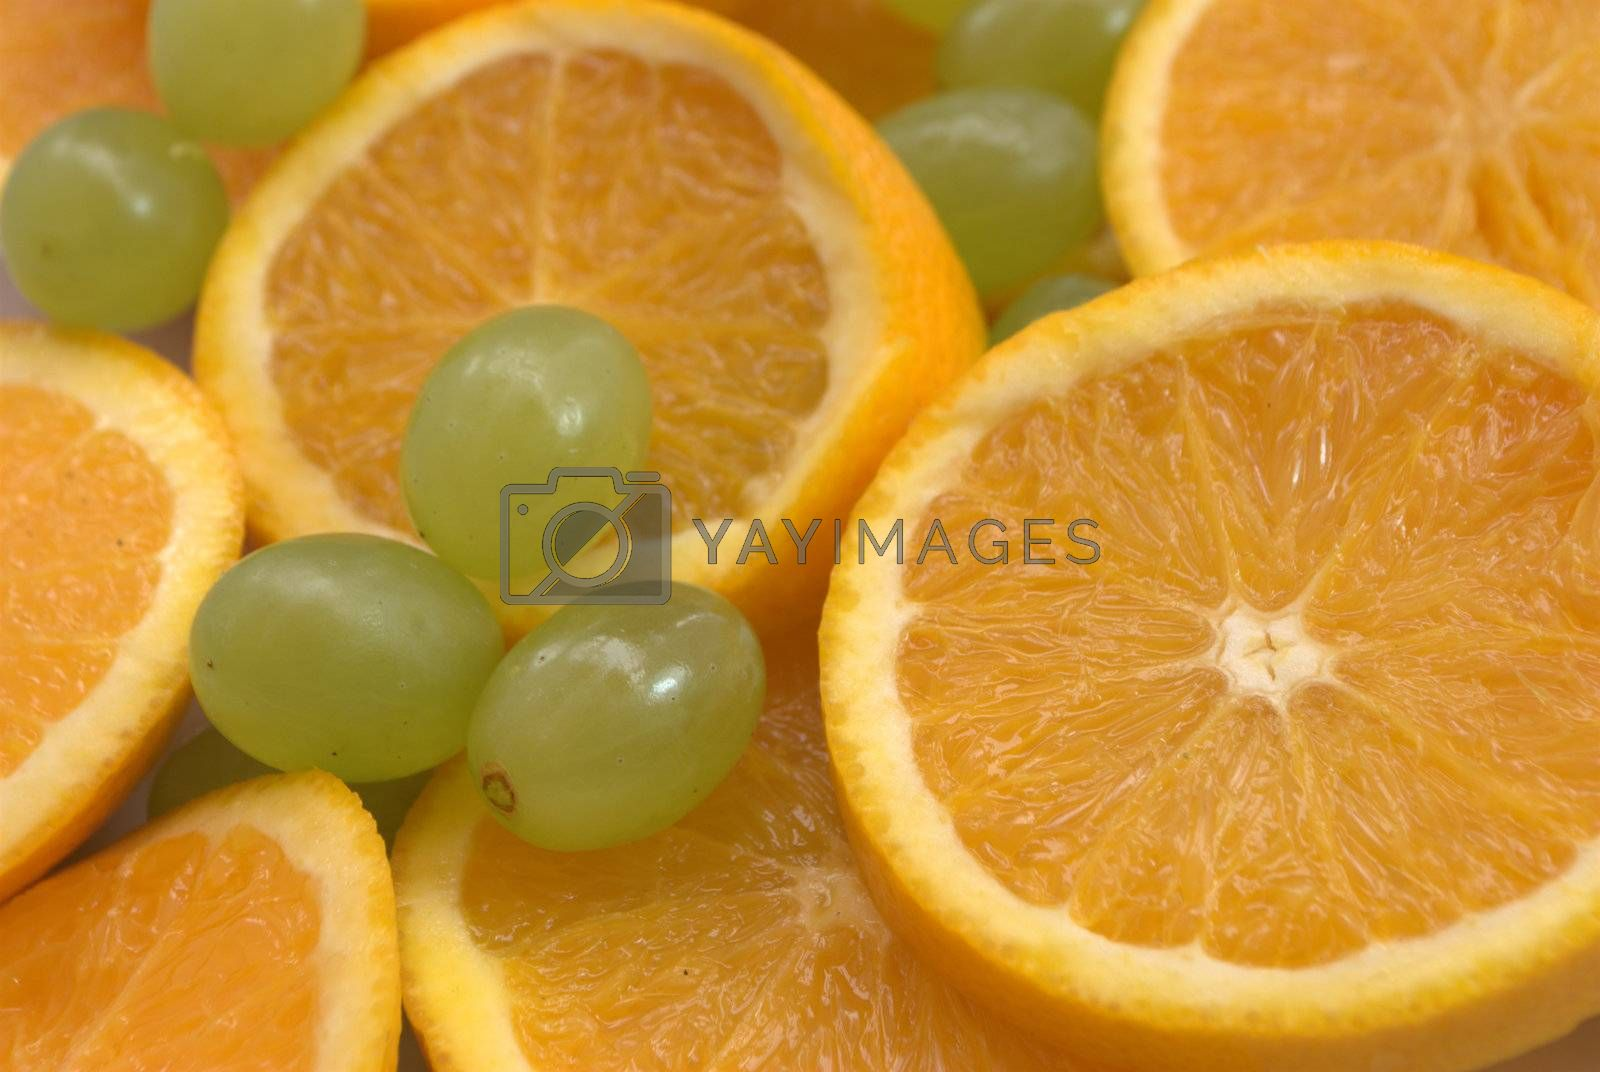 Slices of oranges and whole grapes